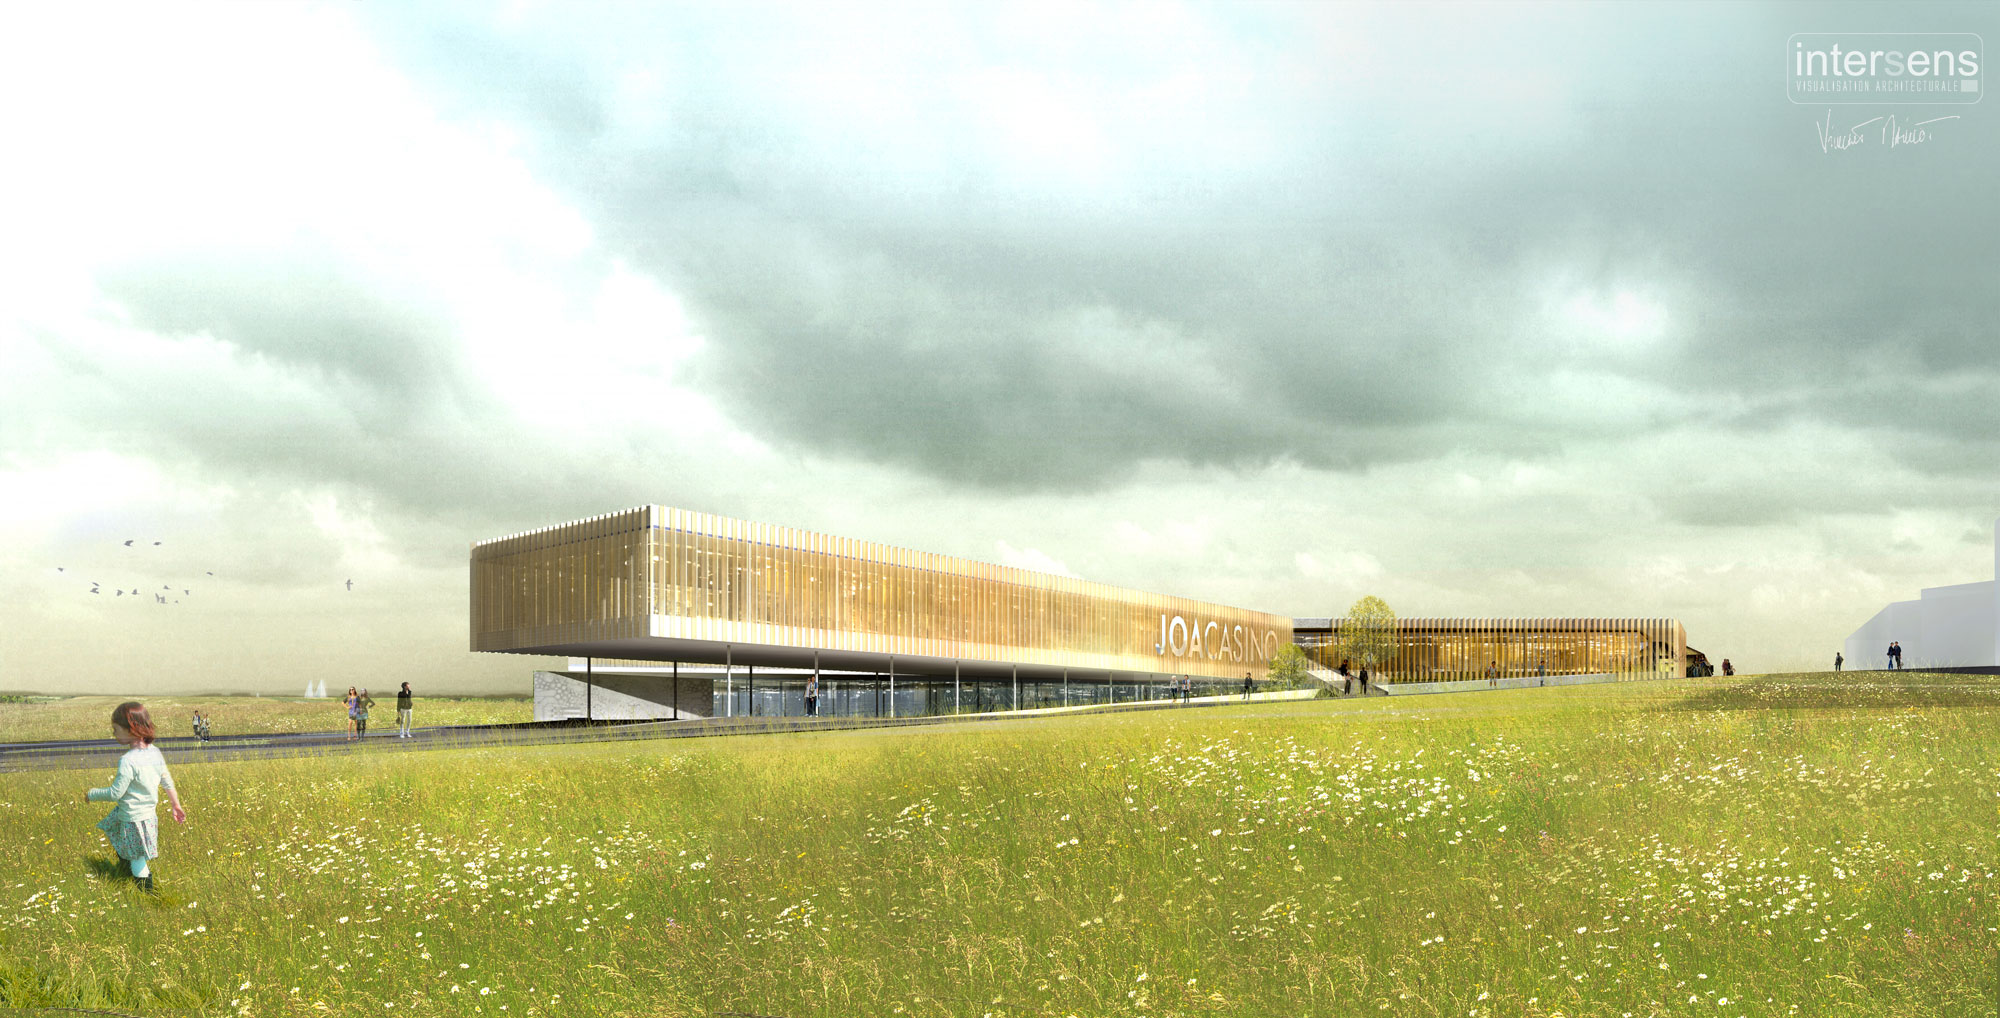 INTERSENS - DATA ARCHITECTE - Casino - Concours Lauréat - Guiffaumont